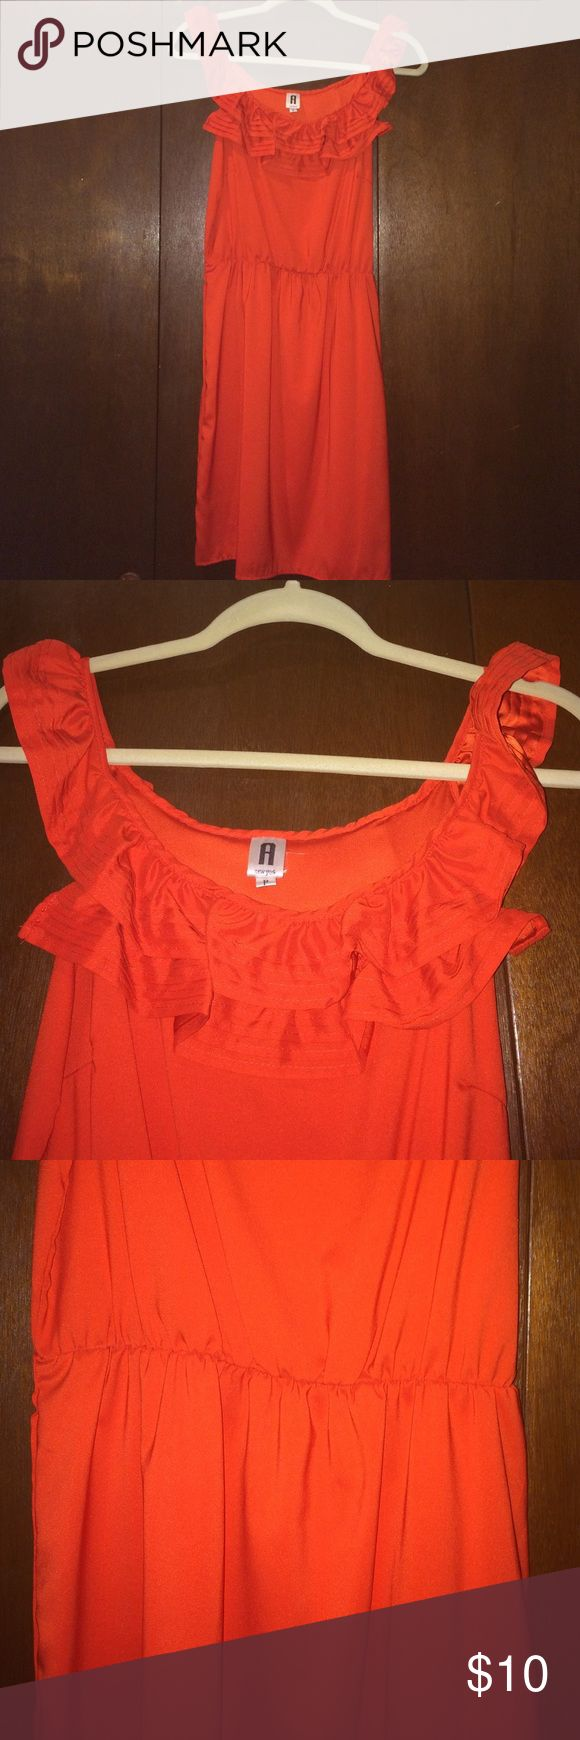 Festive dress! Bright blood orange midi dress, petite. Lovely ruffled neckline that goes off the shoulders with a synched waistline. Polyester. Never worn. NWOT Dresses Midi